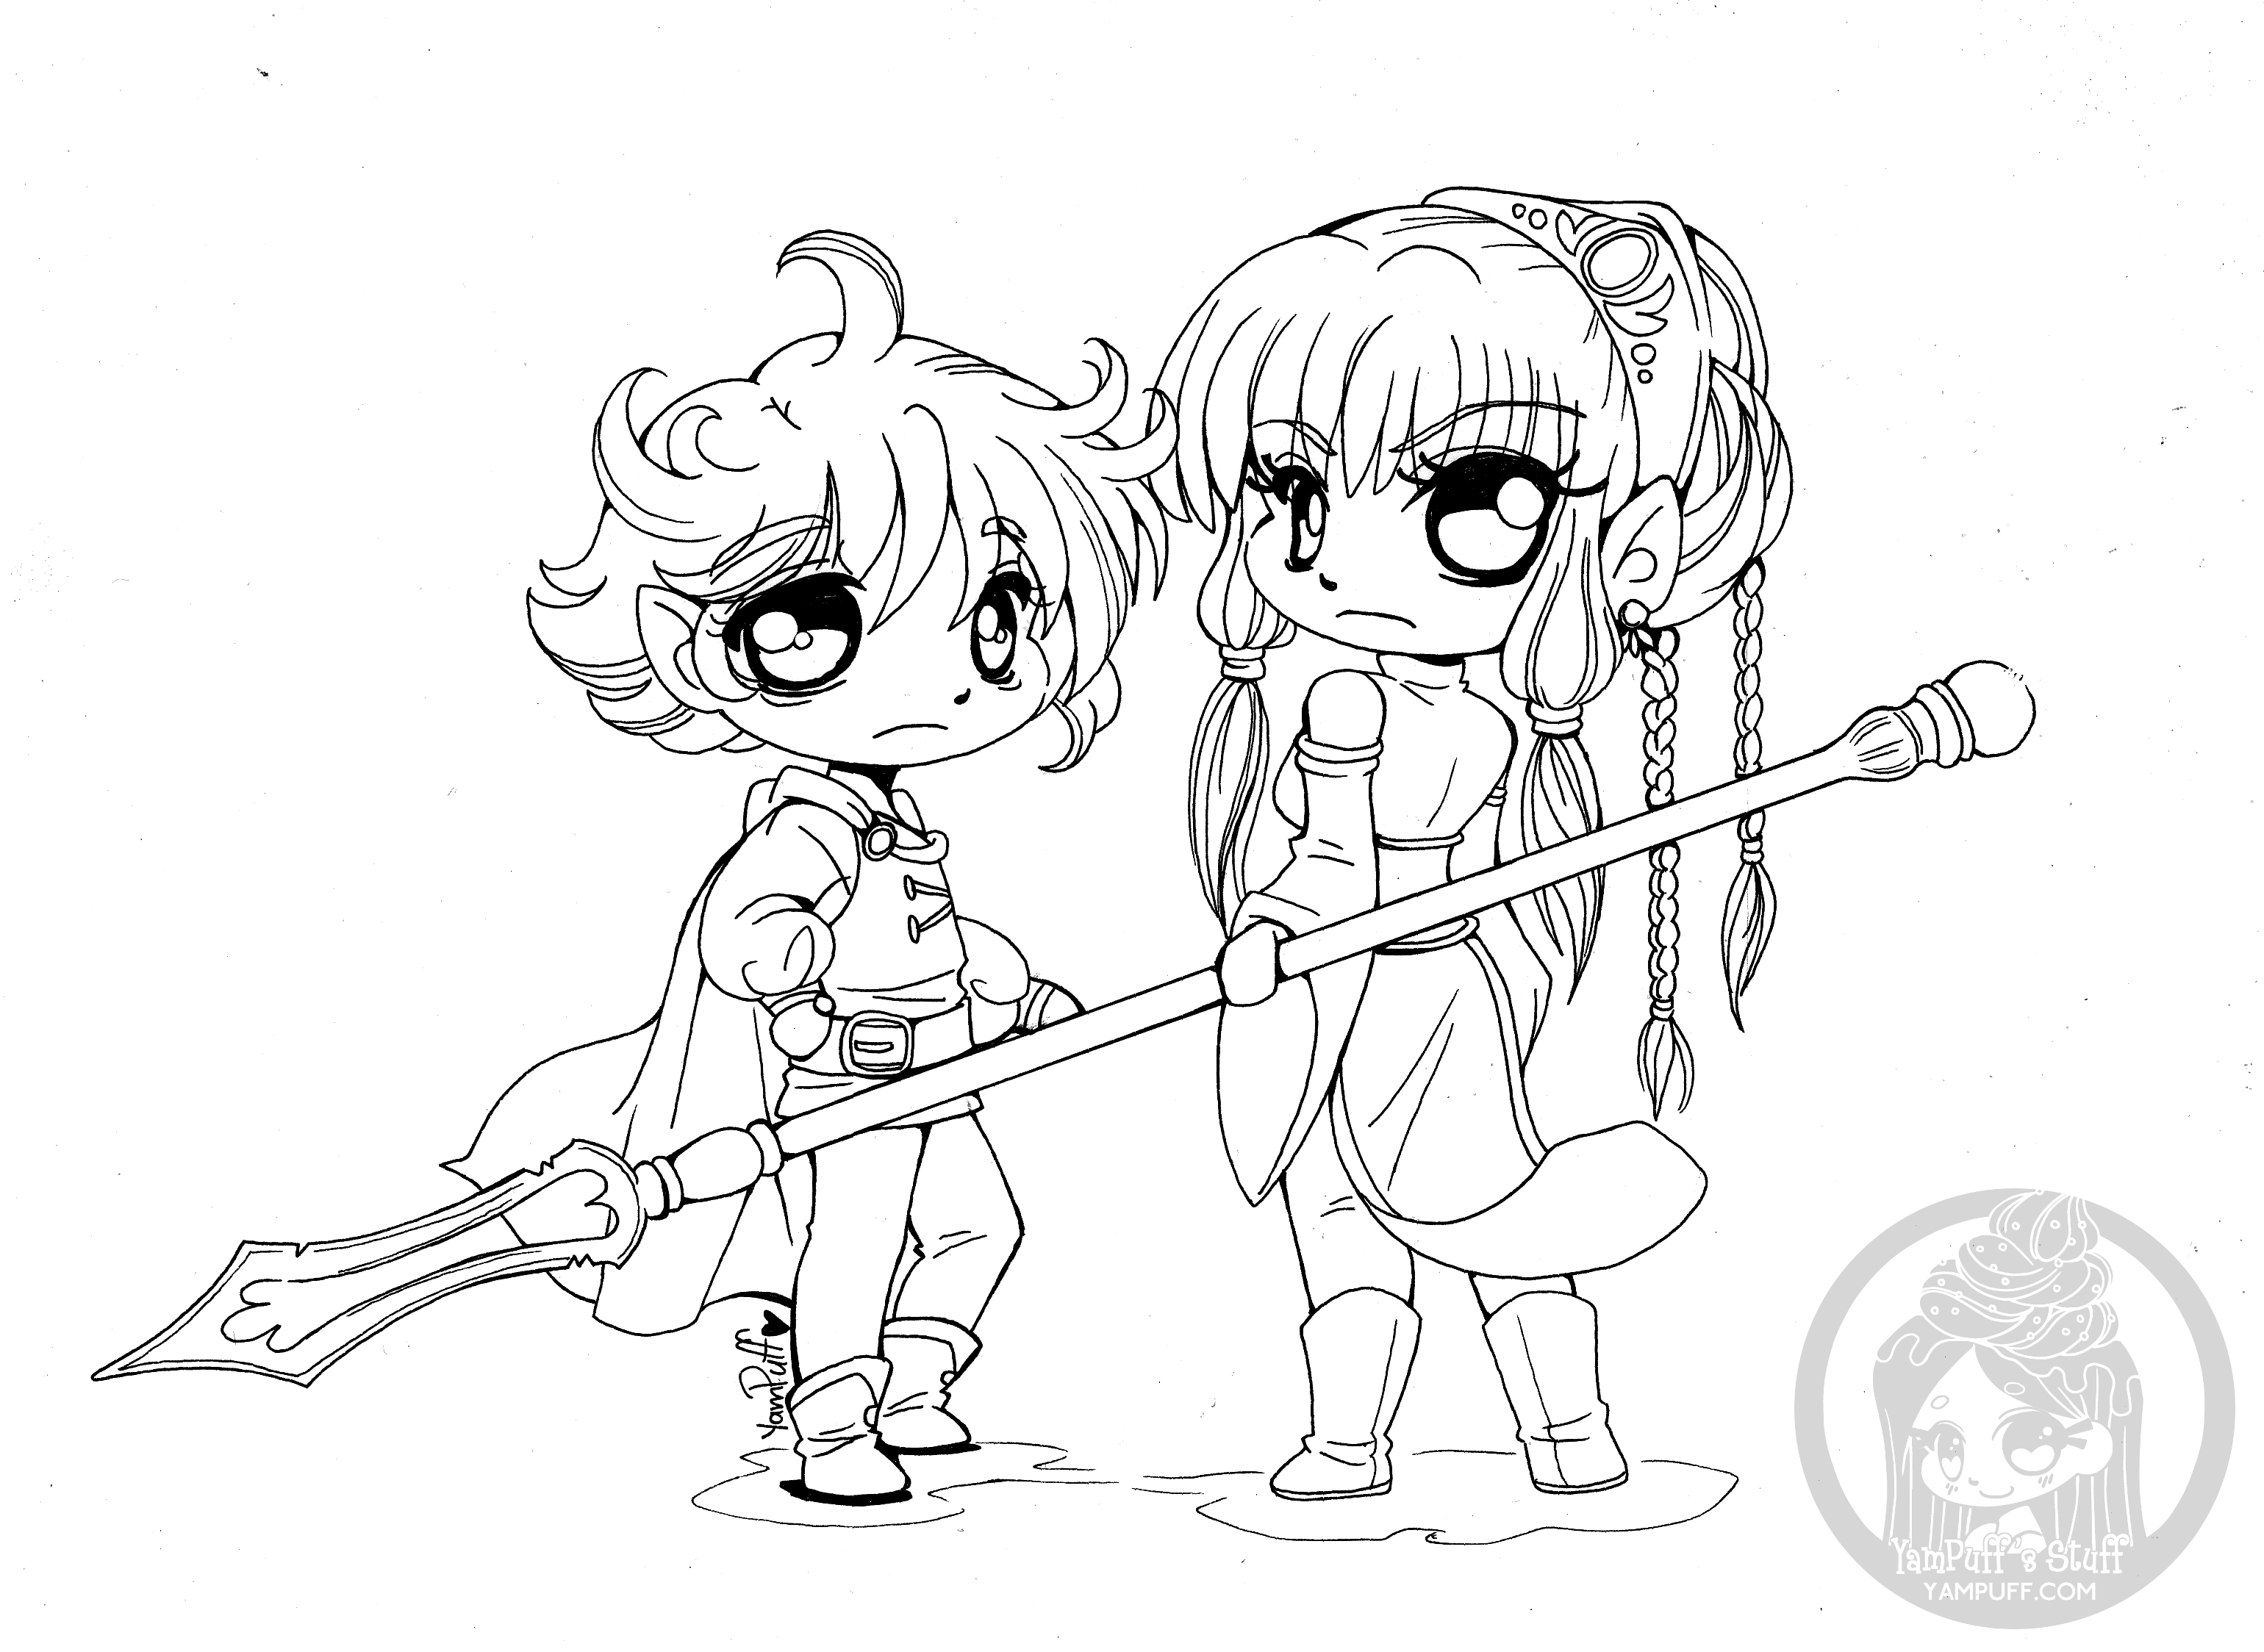 chibi couple coloring pages 9 best images about chibi on pinterest coloring pages couple coloring pages chibi